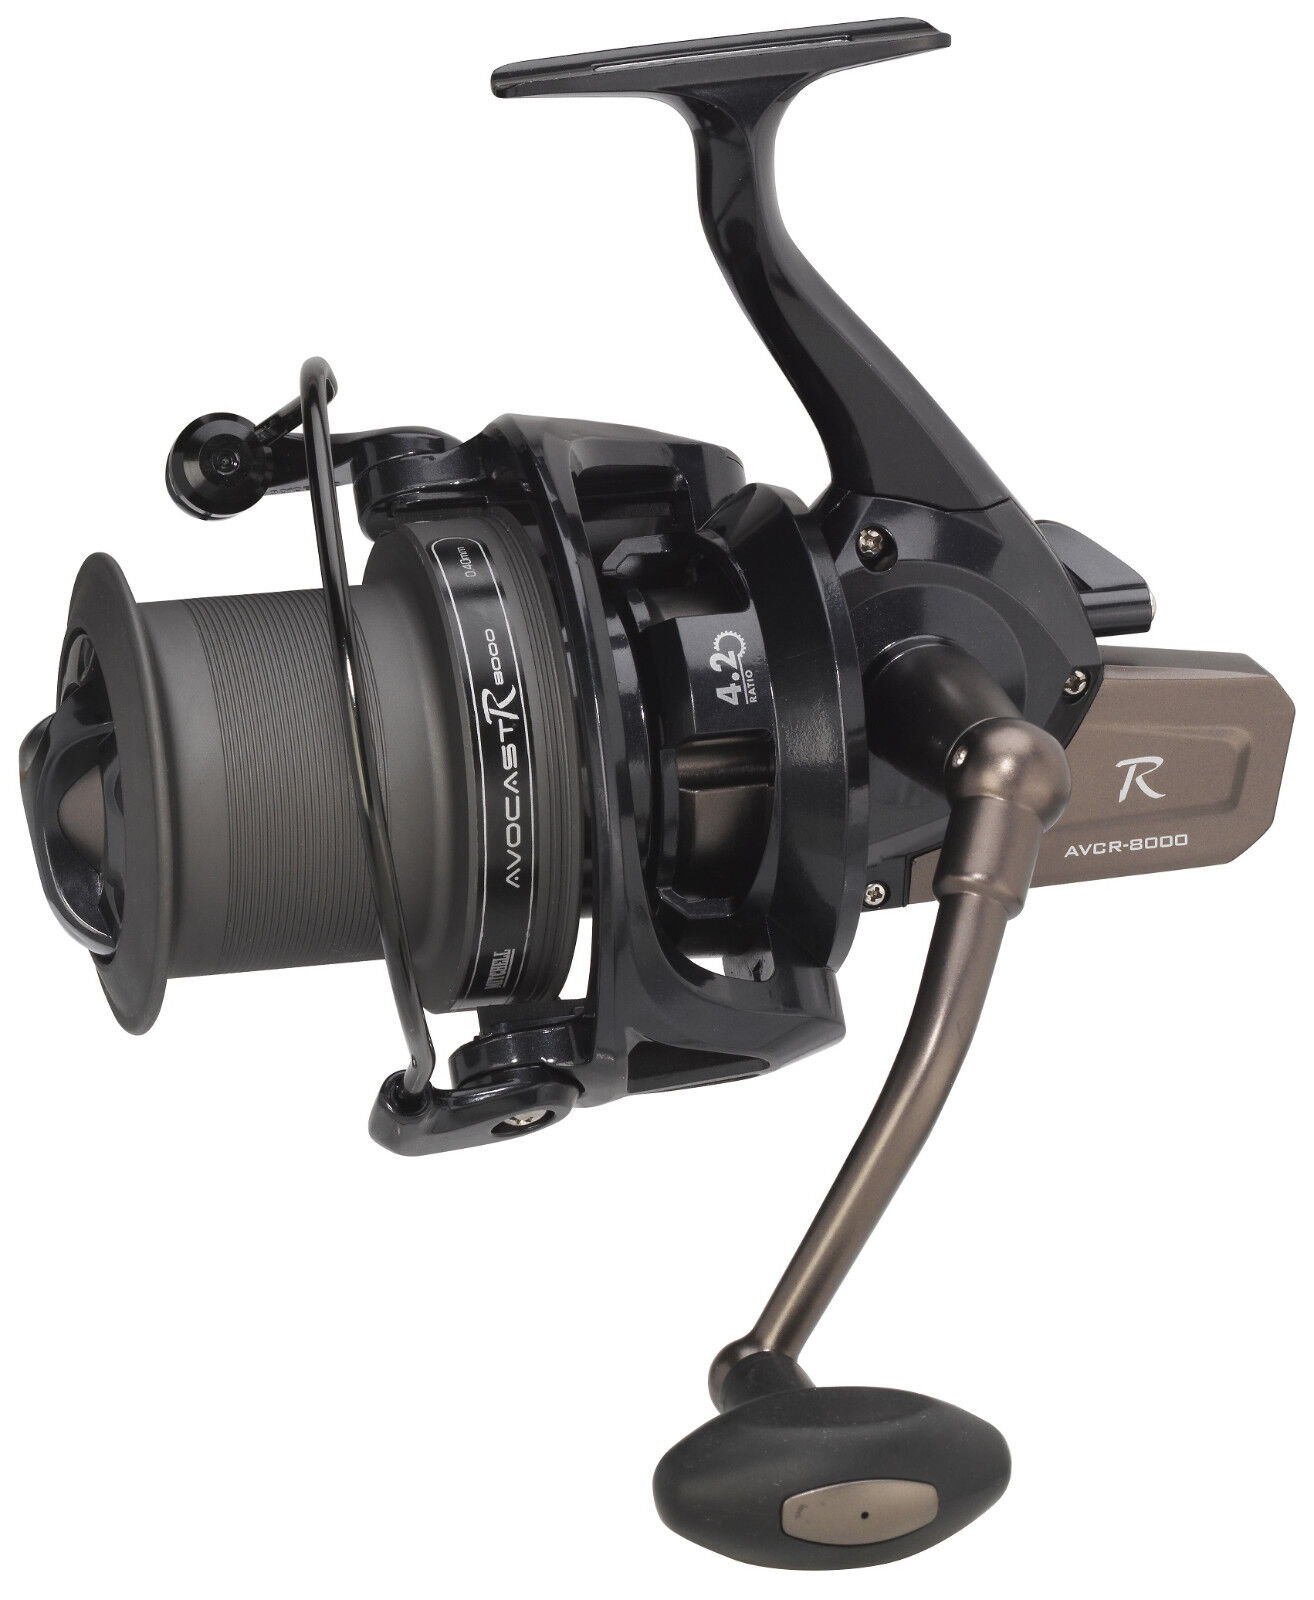 Mitchell Avocast  R Rolle Angelrolle Karpfenrolle Stationärrolle Reel  up to 50% off